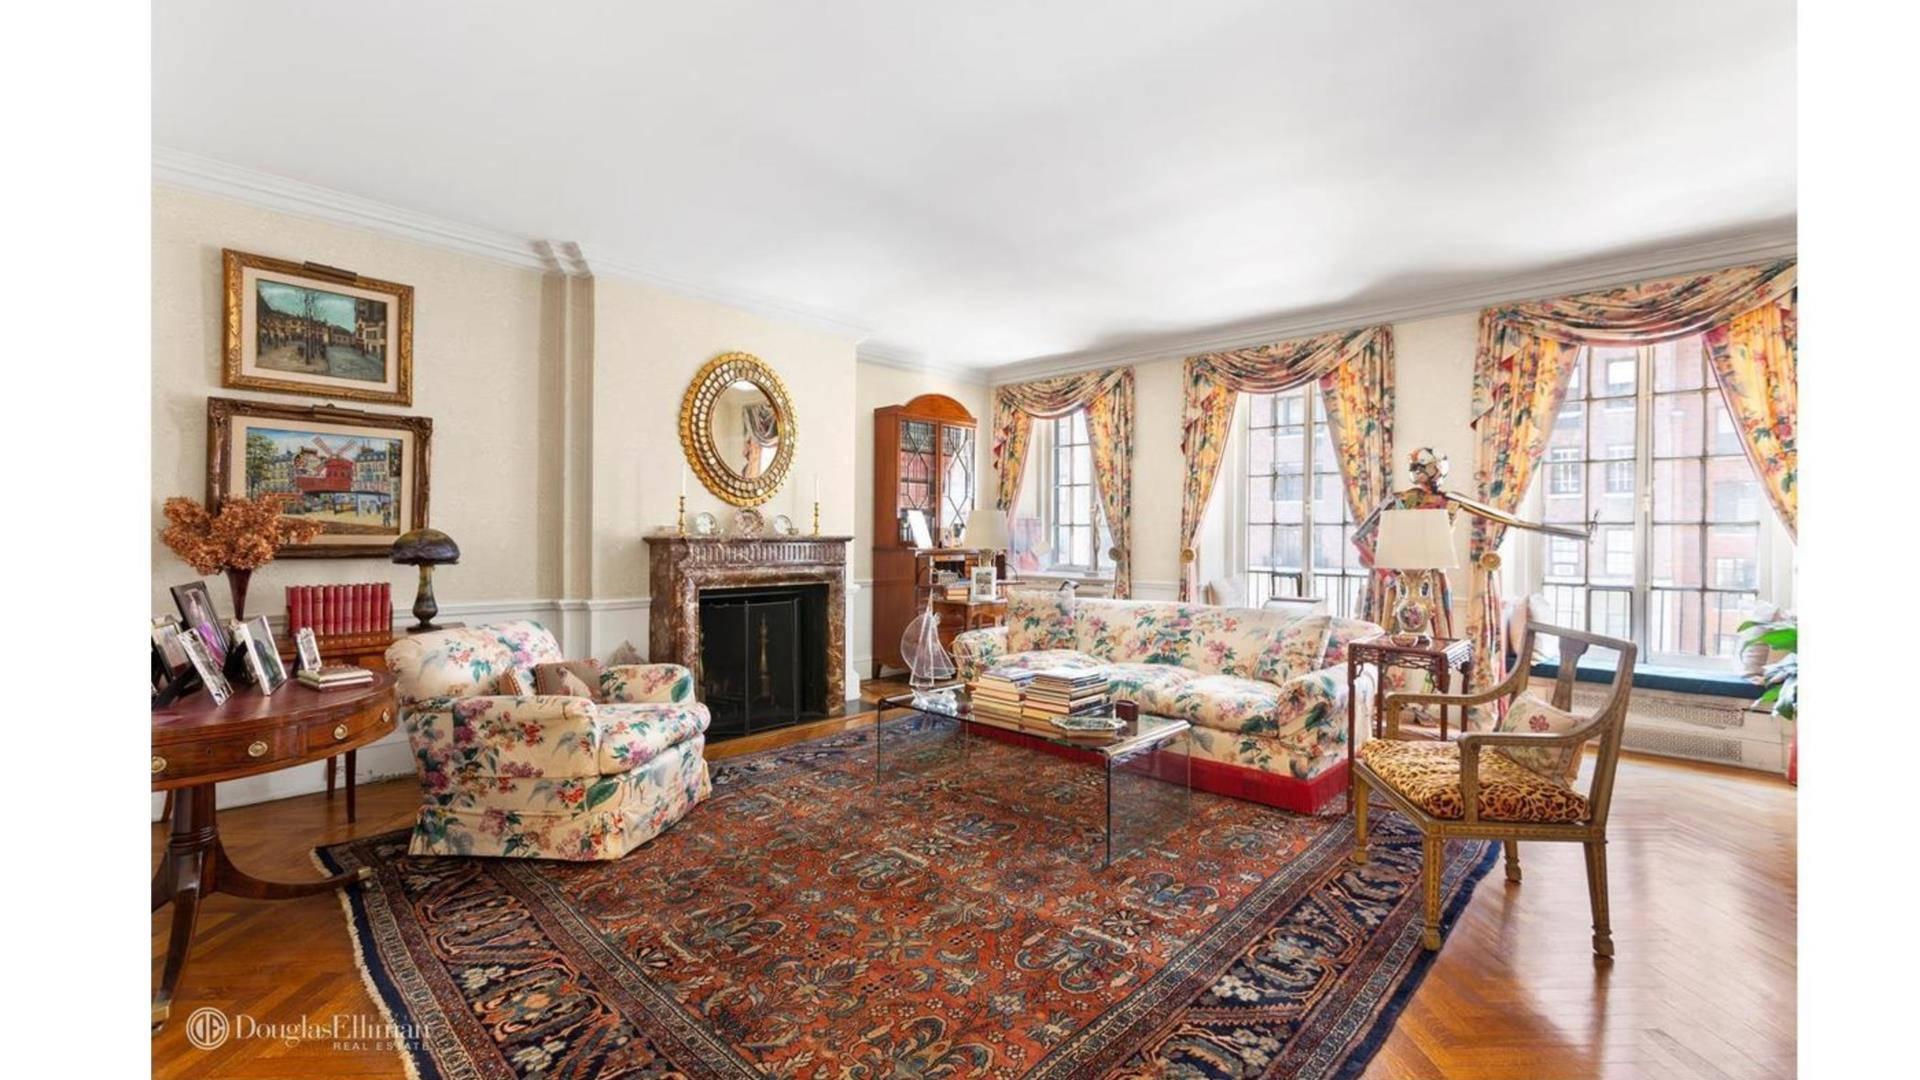 447 East 57th Street Sutton Place New York NY 10022